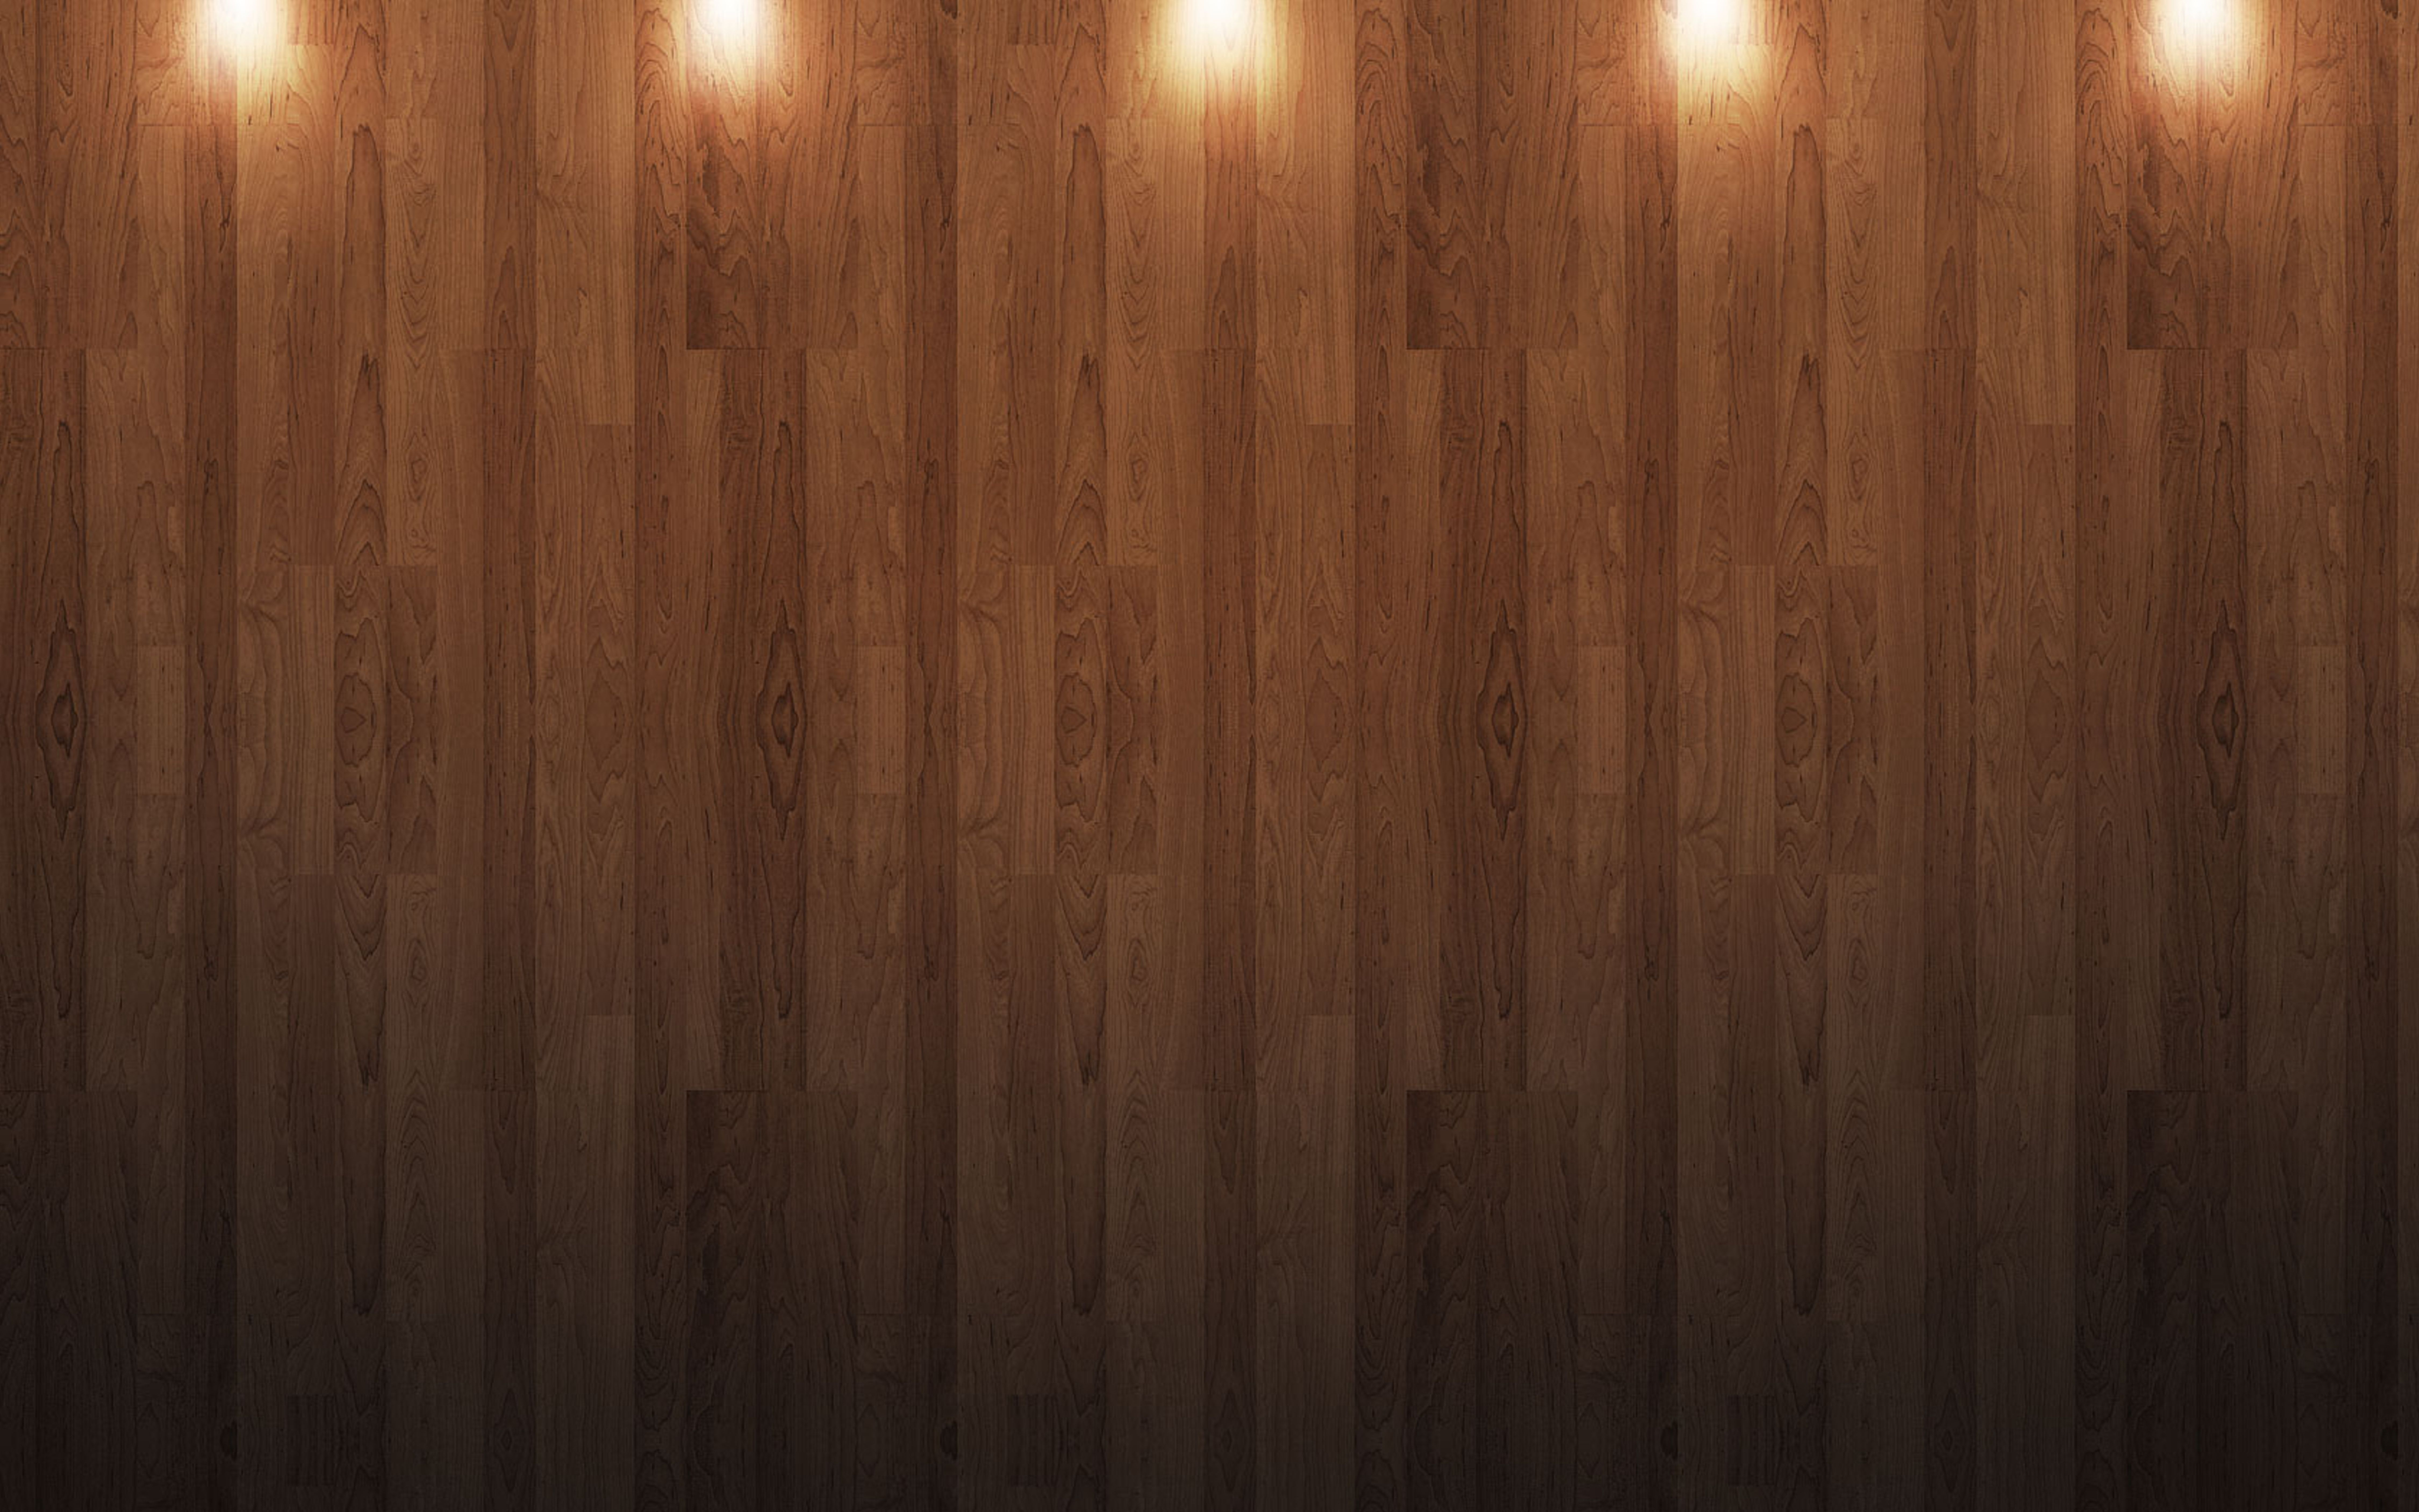 183 Wood HD Wallpapers Backgrounds Wallpaper Abyss